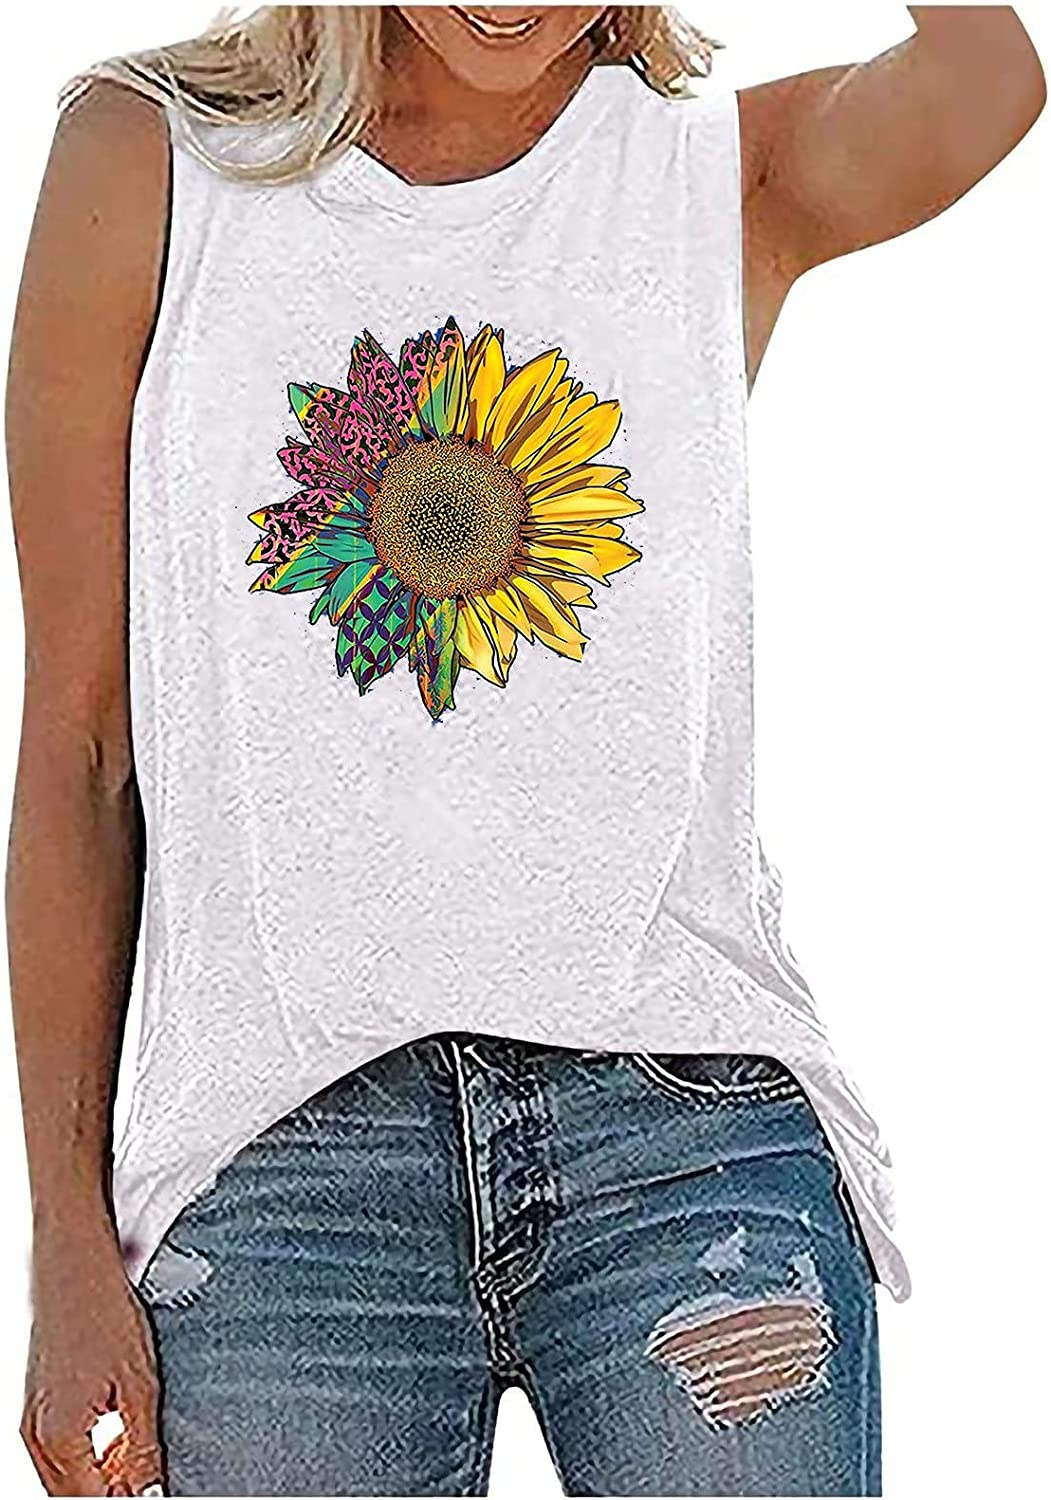 Graphic Tank Tops for Women, Womens Summer Funny Dandelion Printed Vest Tops Casual Loose Fit Sleeveless Tee Shirts